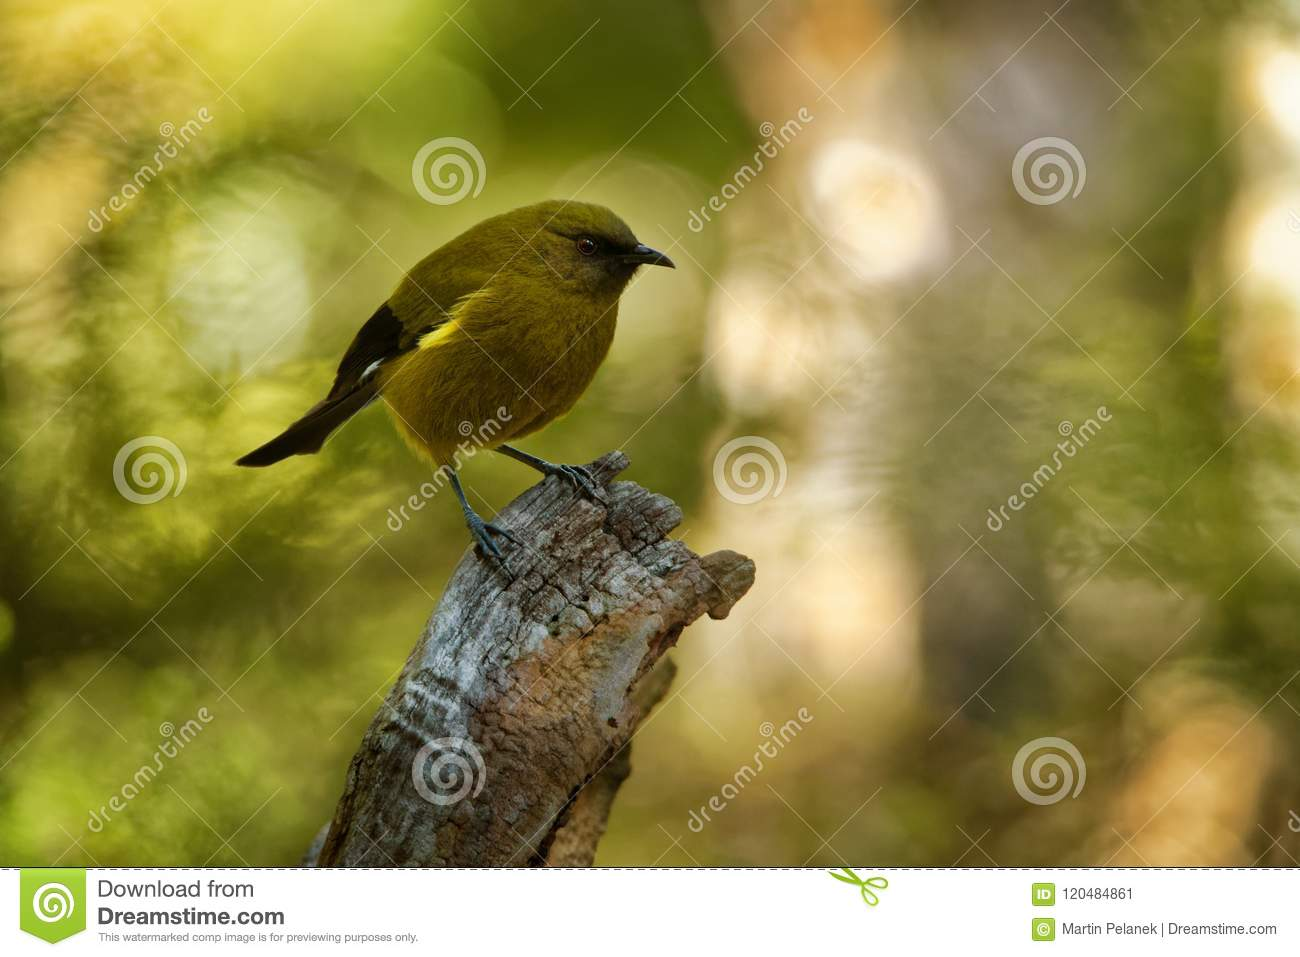 Bellbird - Anthornis melanura - makomako in Maori language, endemic bird - honeyeater from New Zealand in the green forest